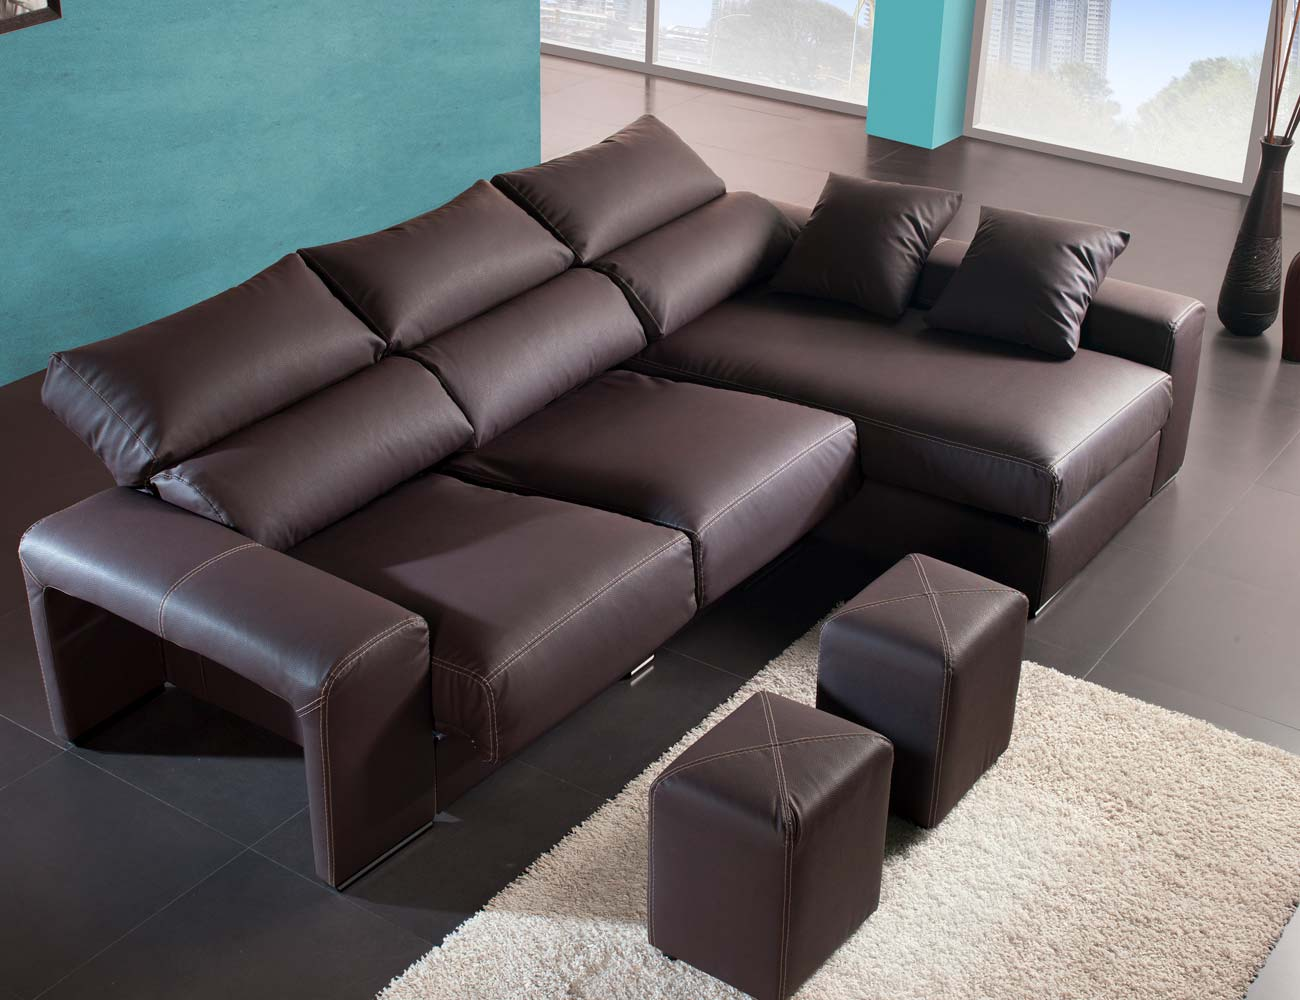 Sofa chaiselongue moderno polipiel chocolate poufs taburetes44